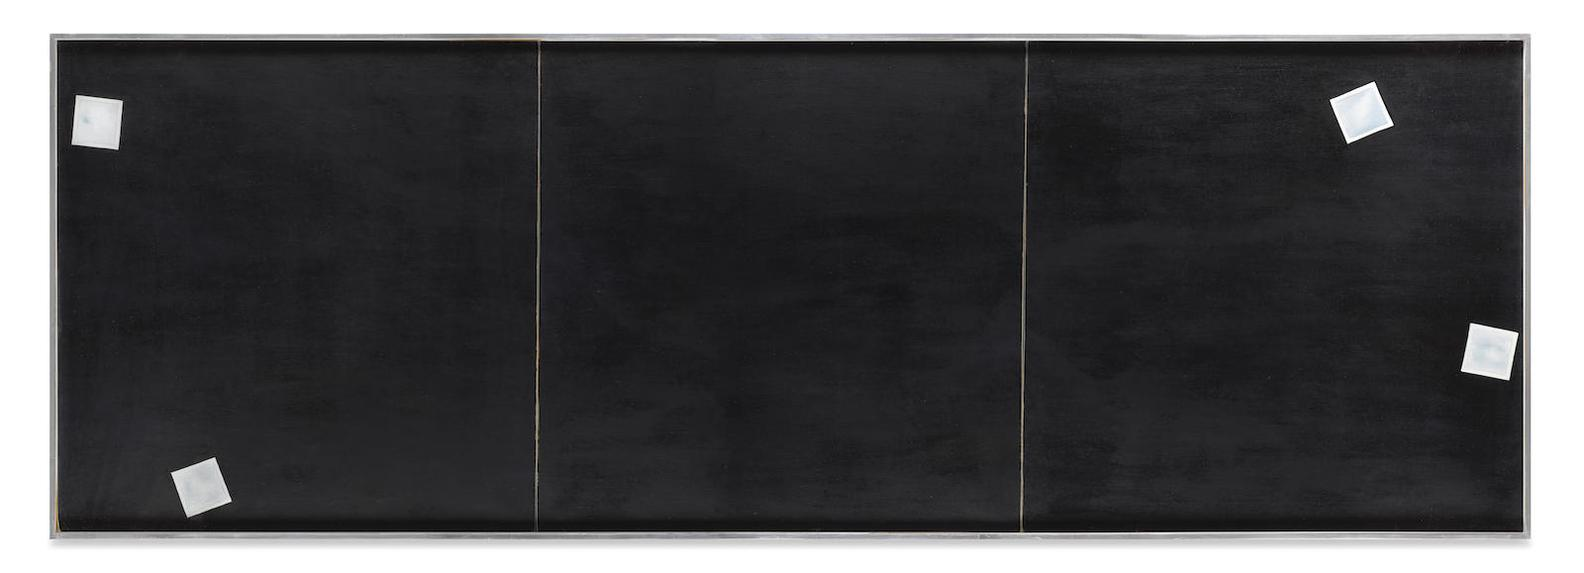 Joe Goode-Untitled (Black Photo Cloud Triptych)-1970